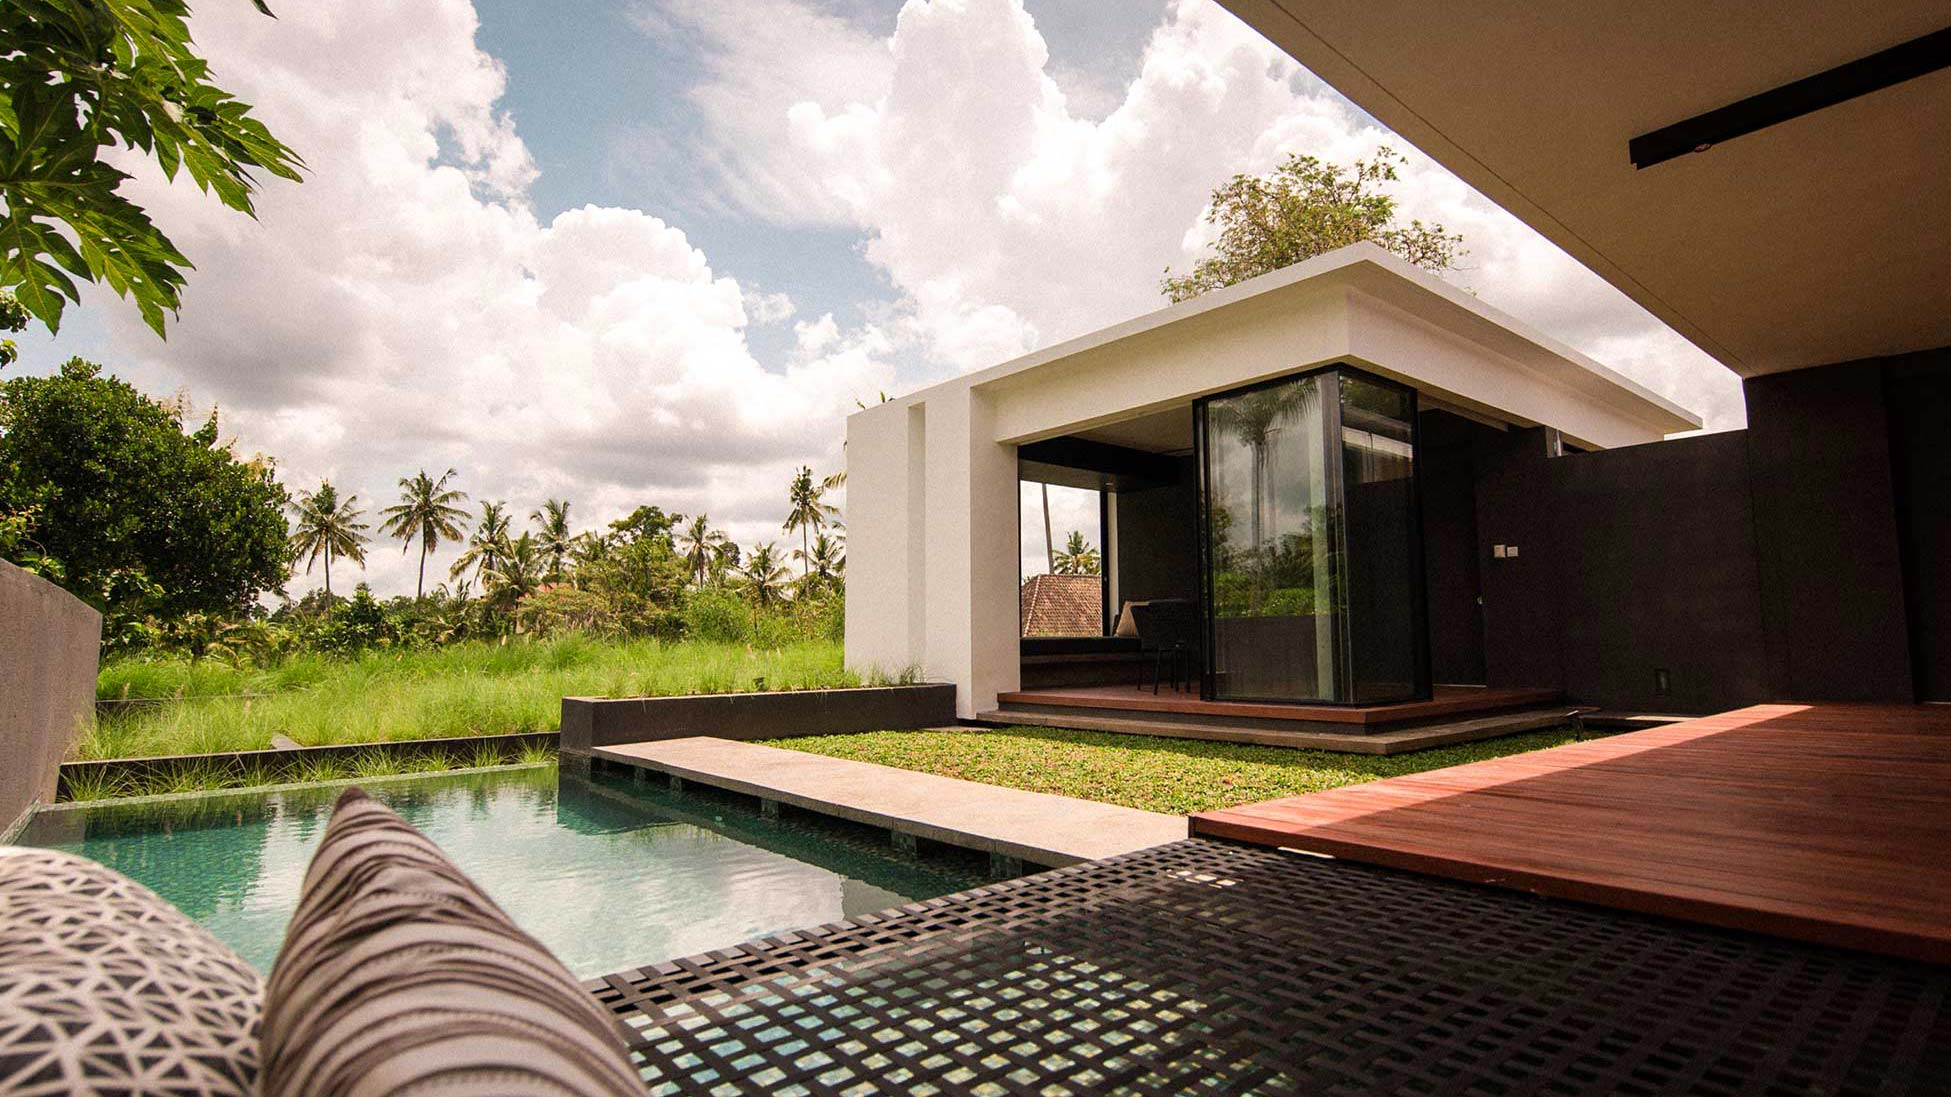 InSitu Asia | Origin Villas Ubud | Creative Approach to Hospitality